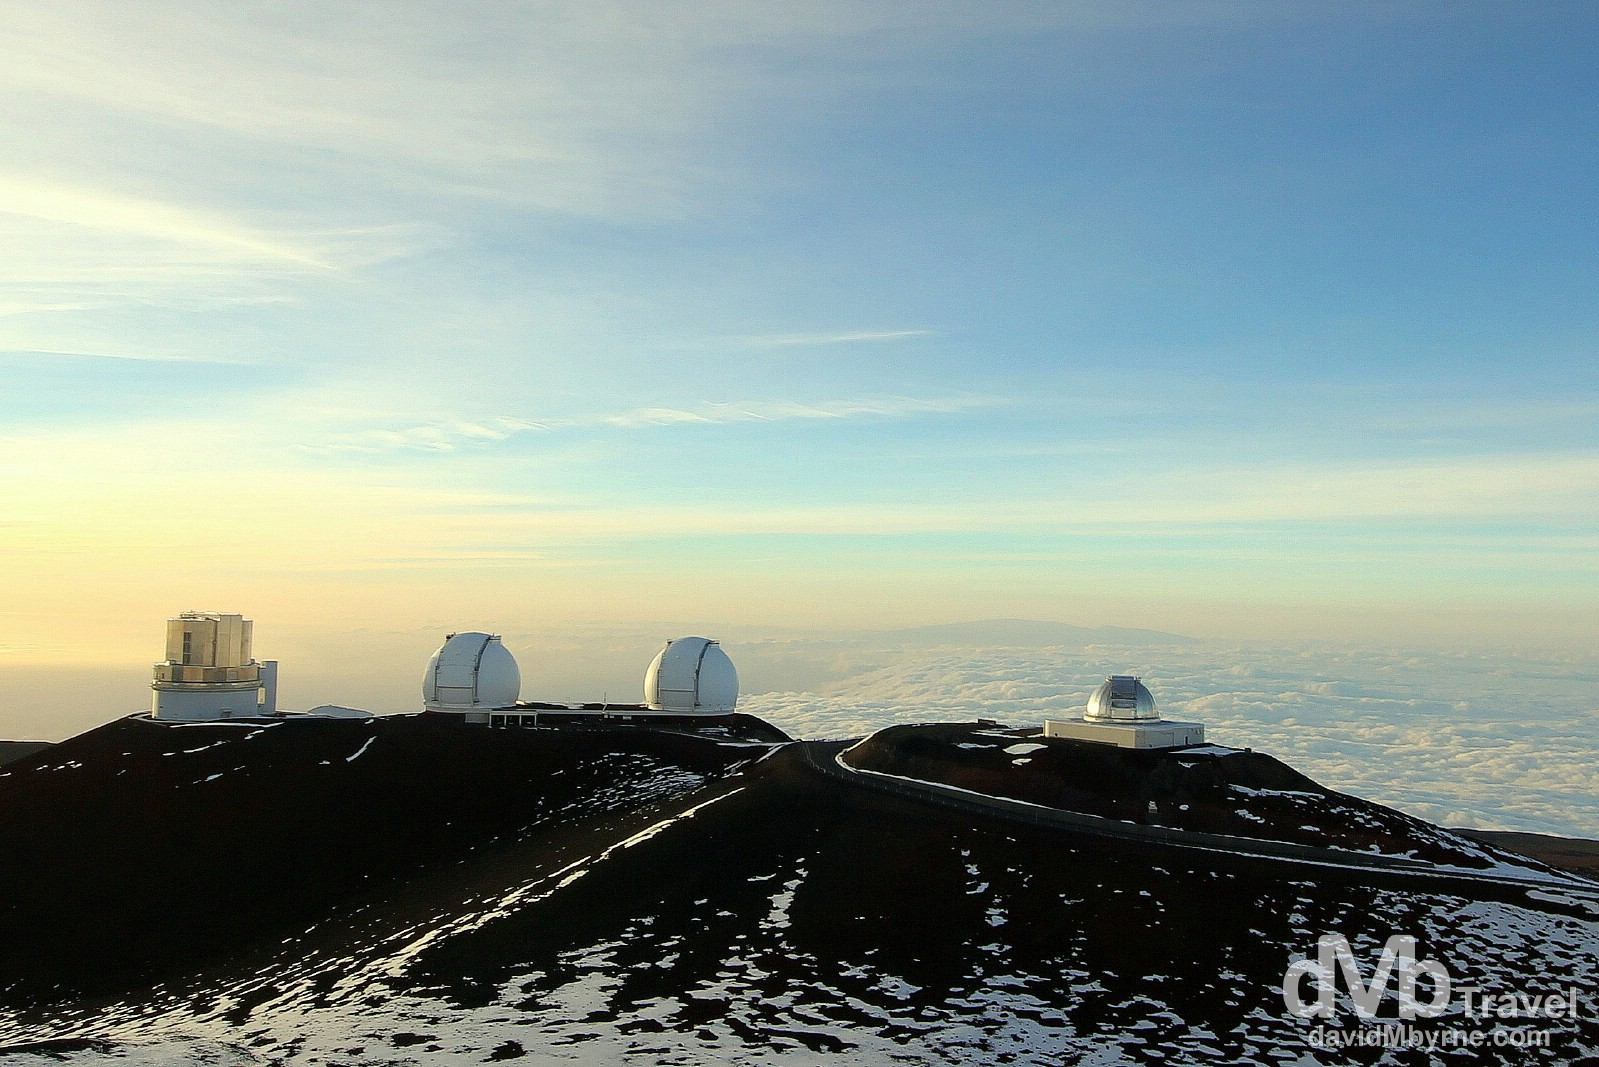 Observatories above the clouds atop Mauna Kea, the highest point in the Pacific, the Big Island of Hawaii, USA. March 3rd 2013.